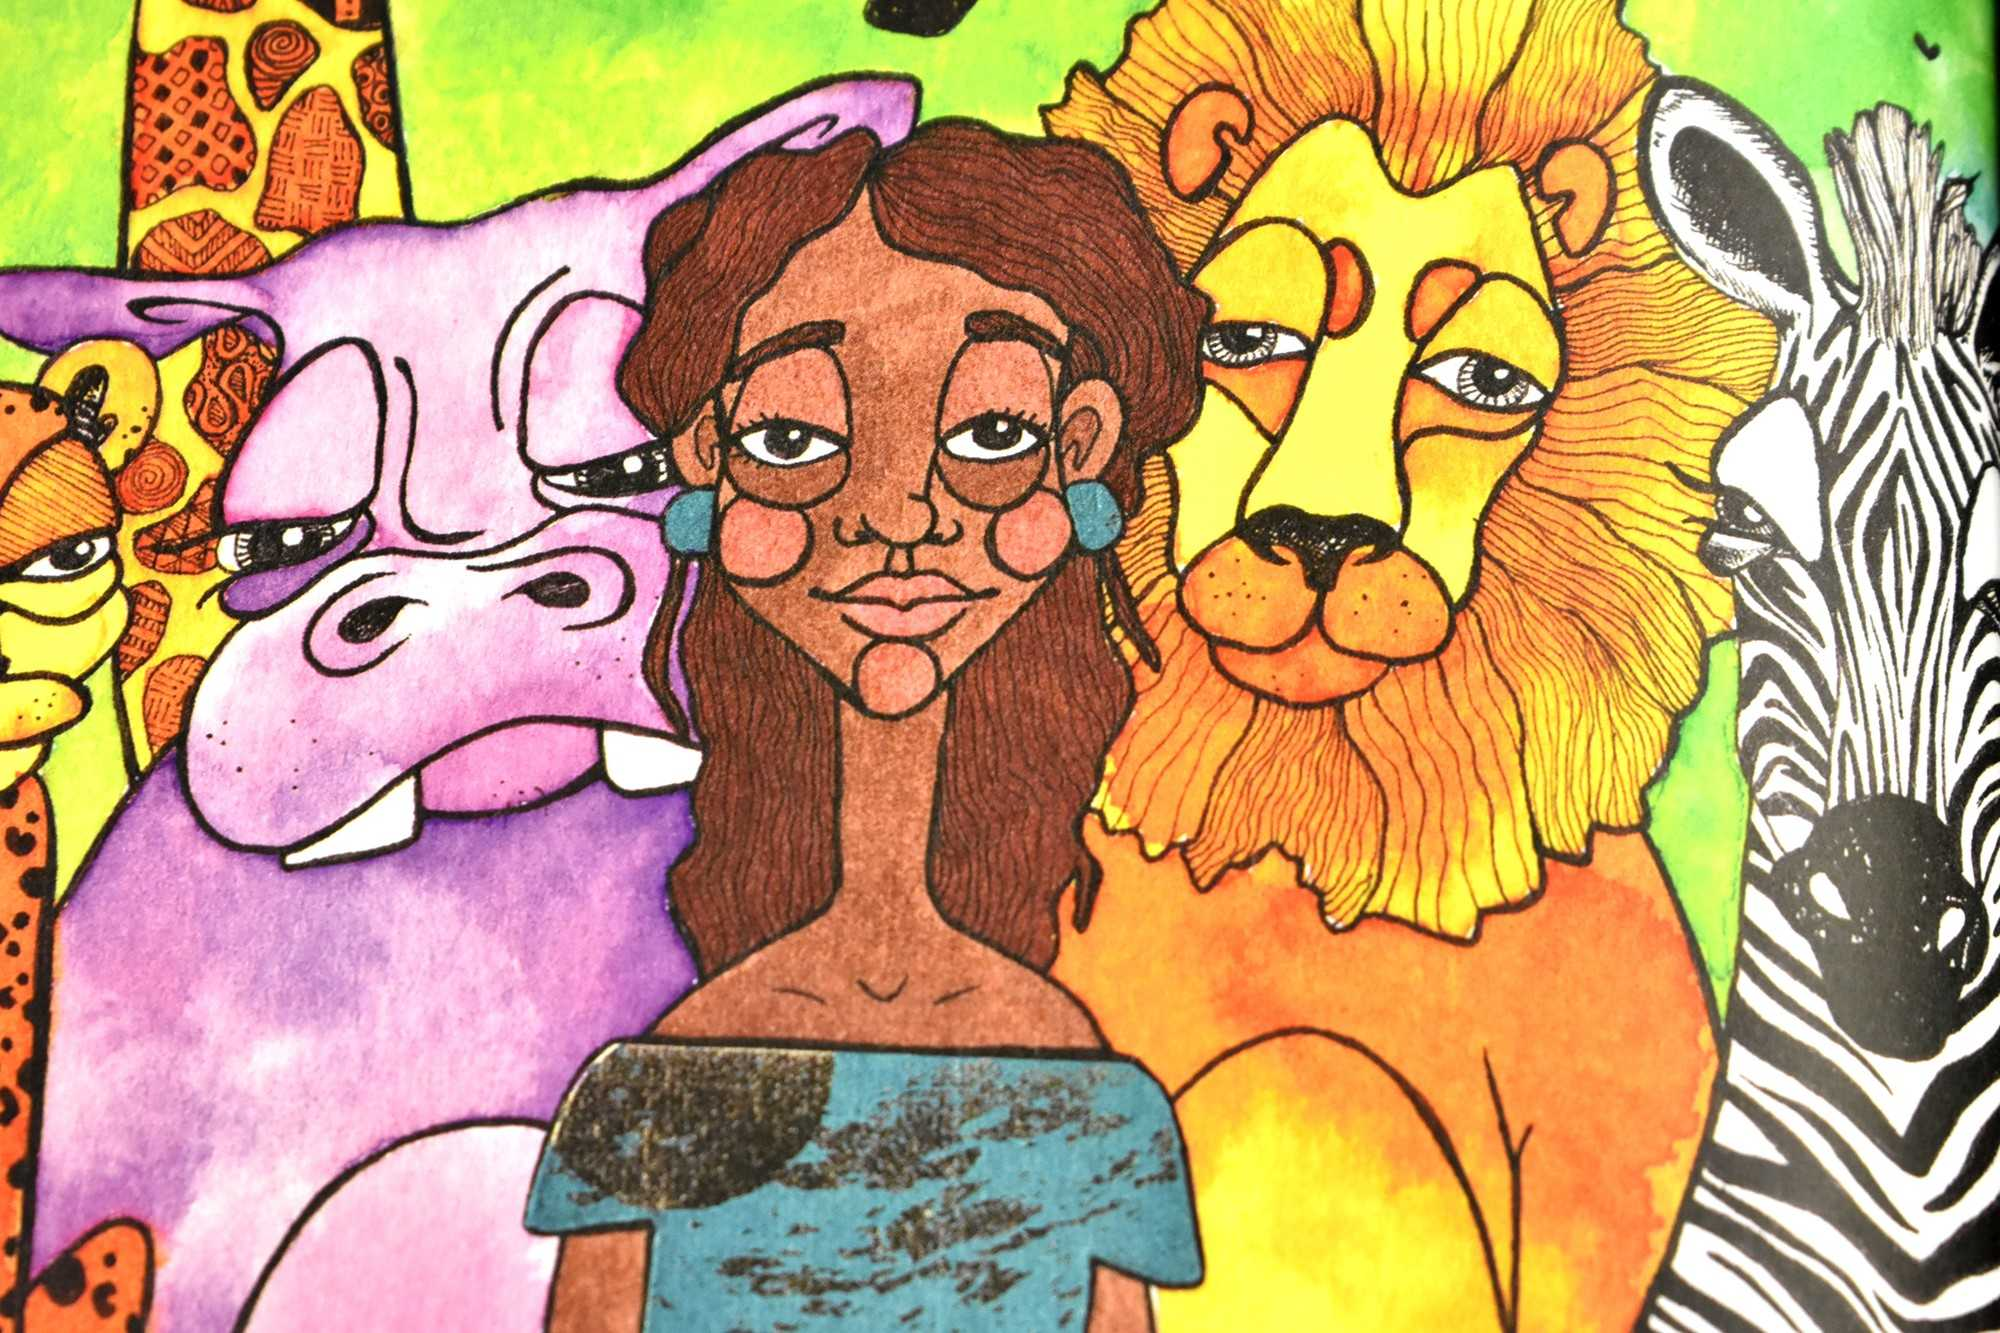 brightly colored illustrations of a brown-skinned girl, pink hippo, orange lion, and zebra